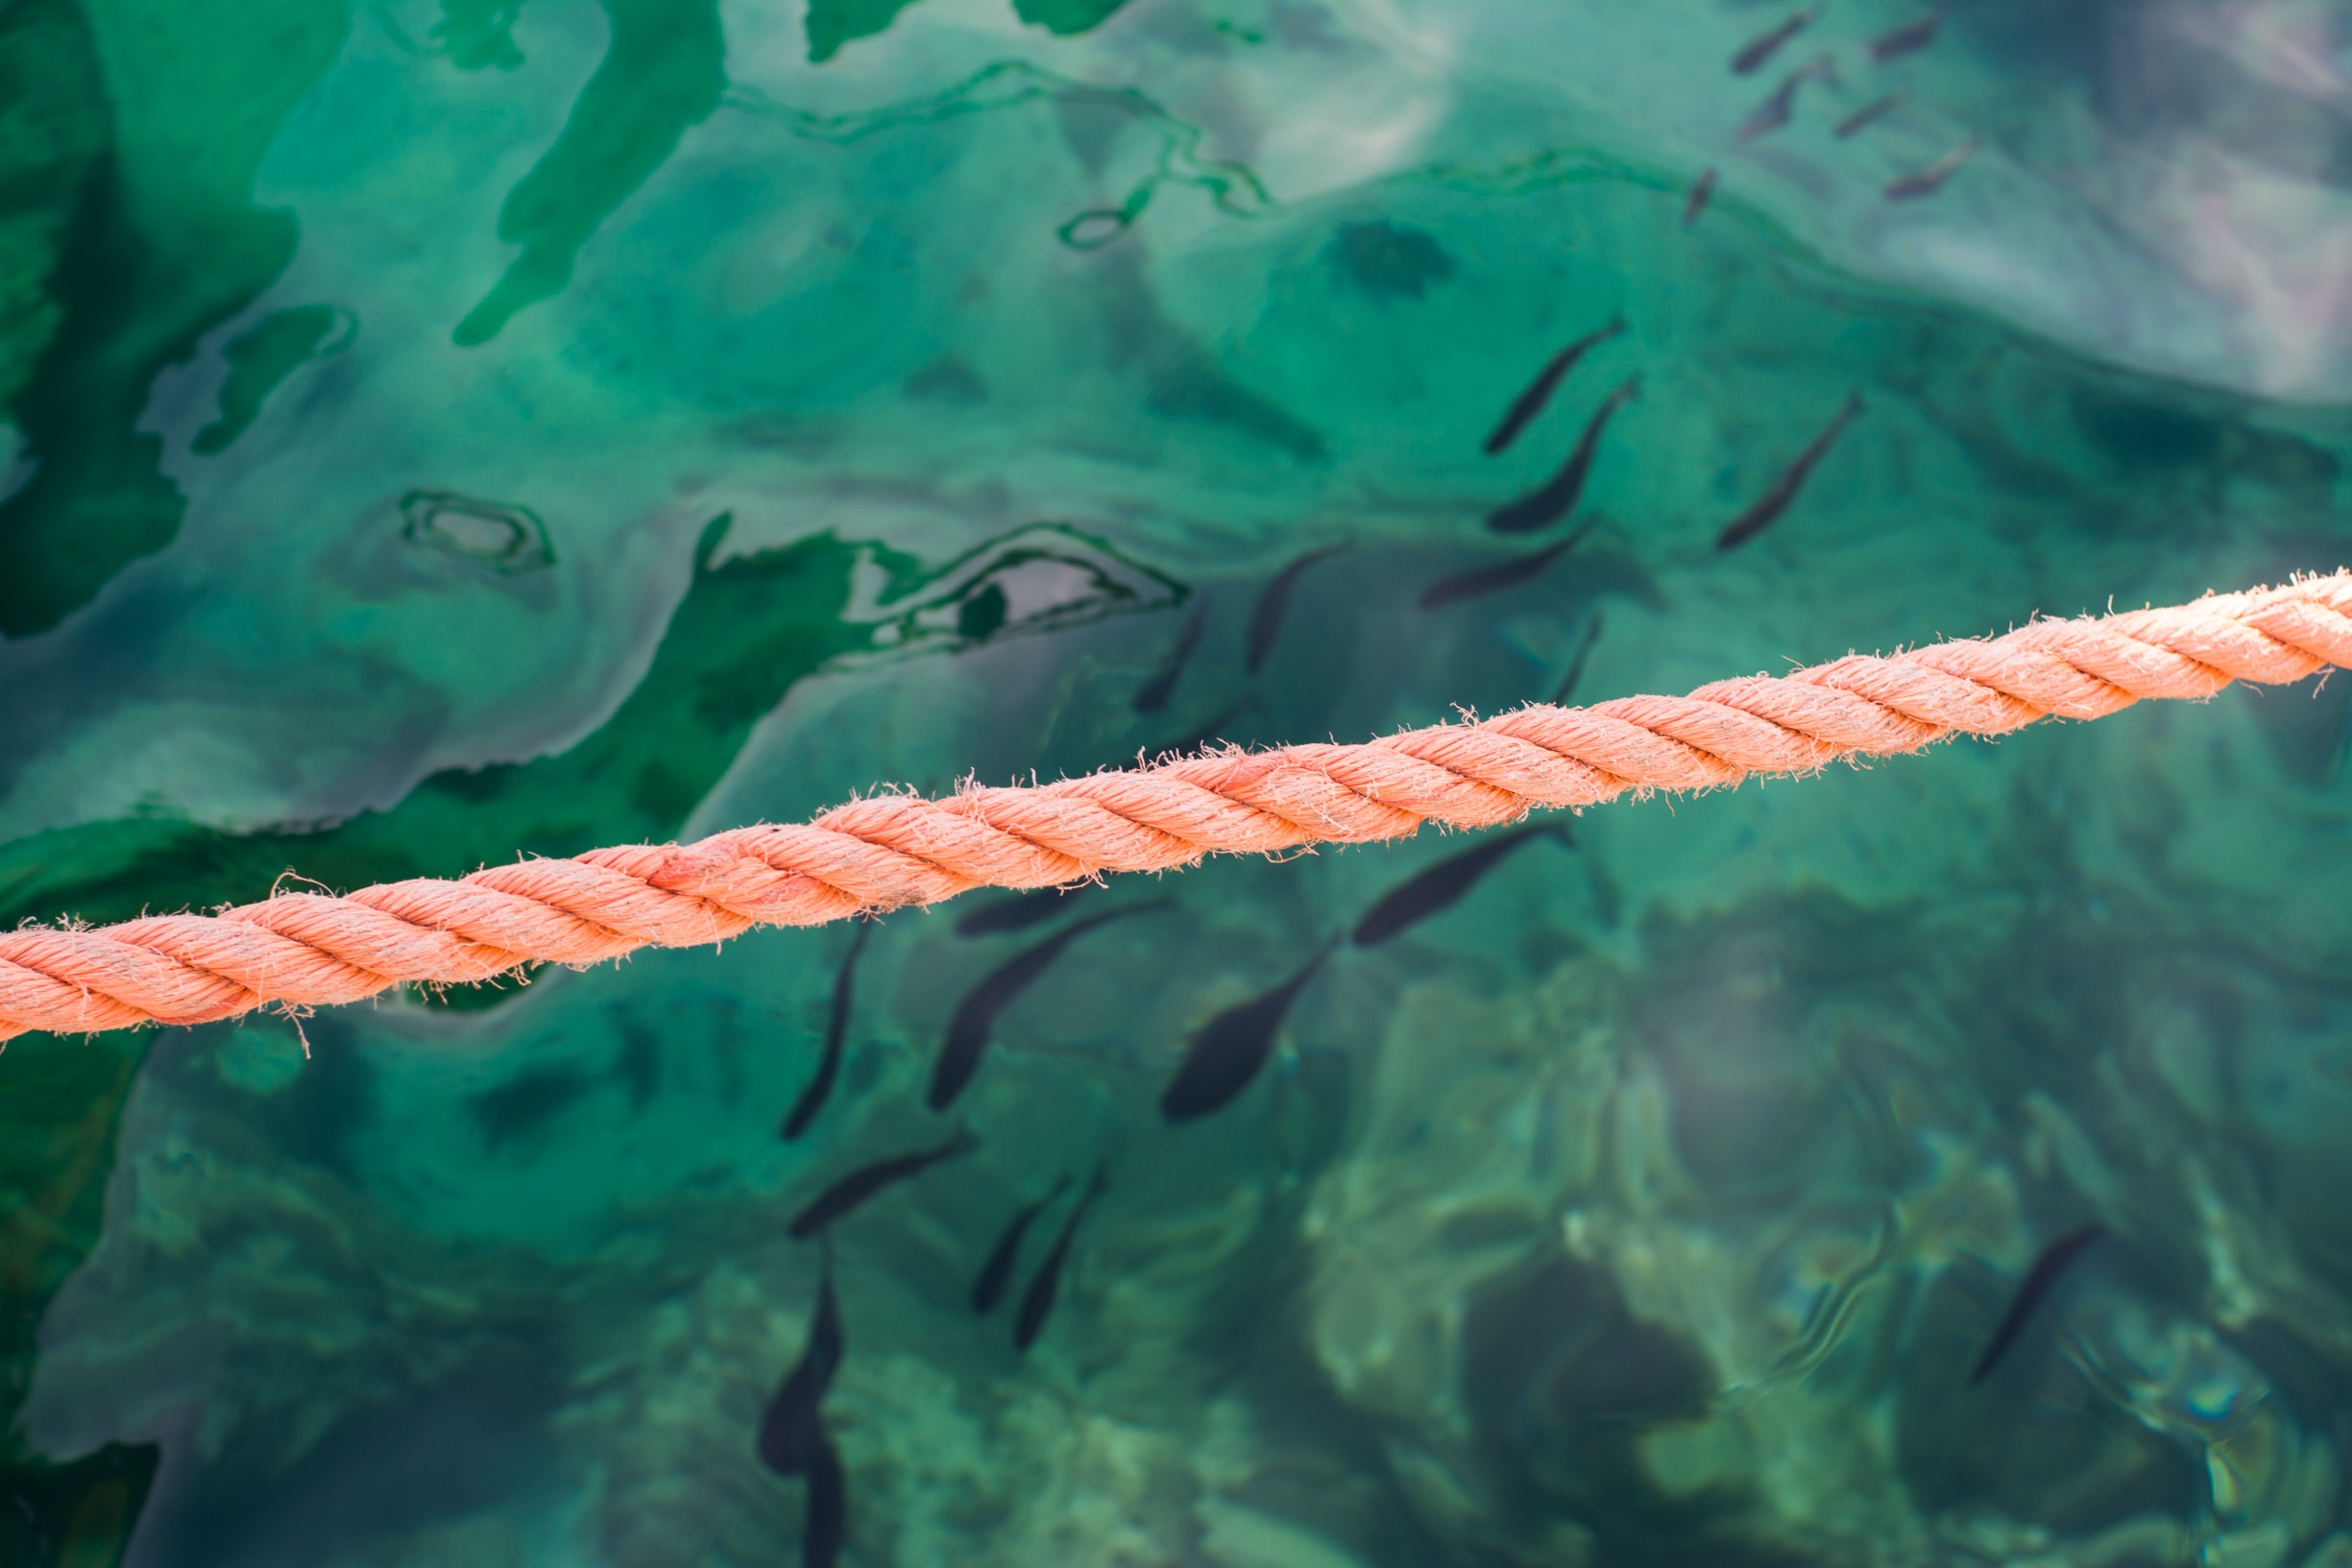 photo of orange rope beside green body of water